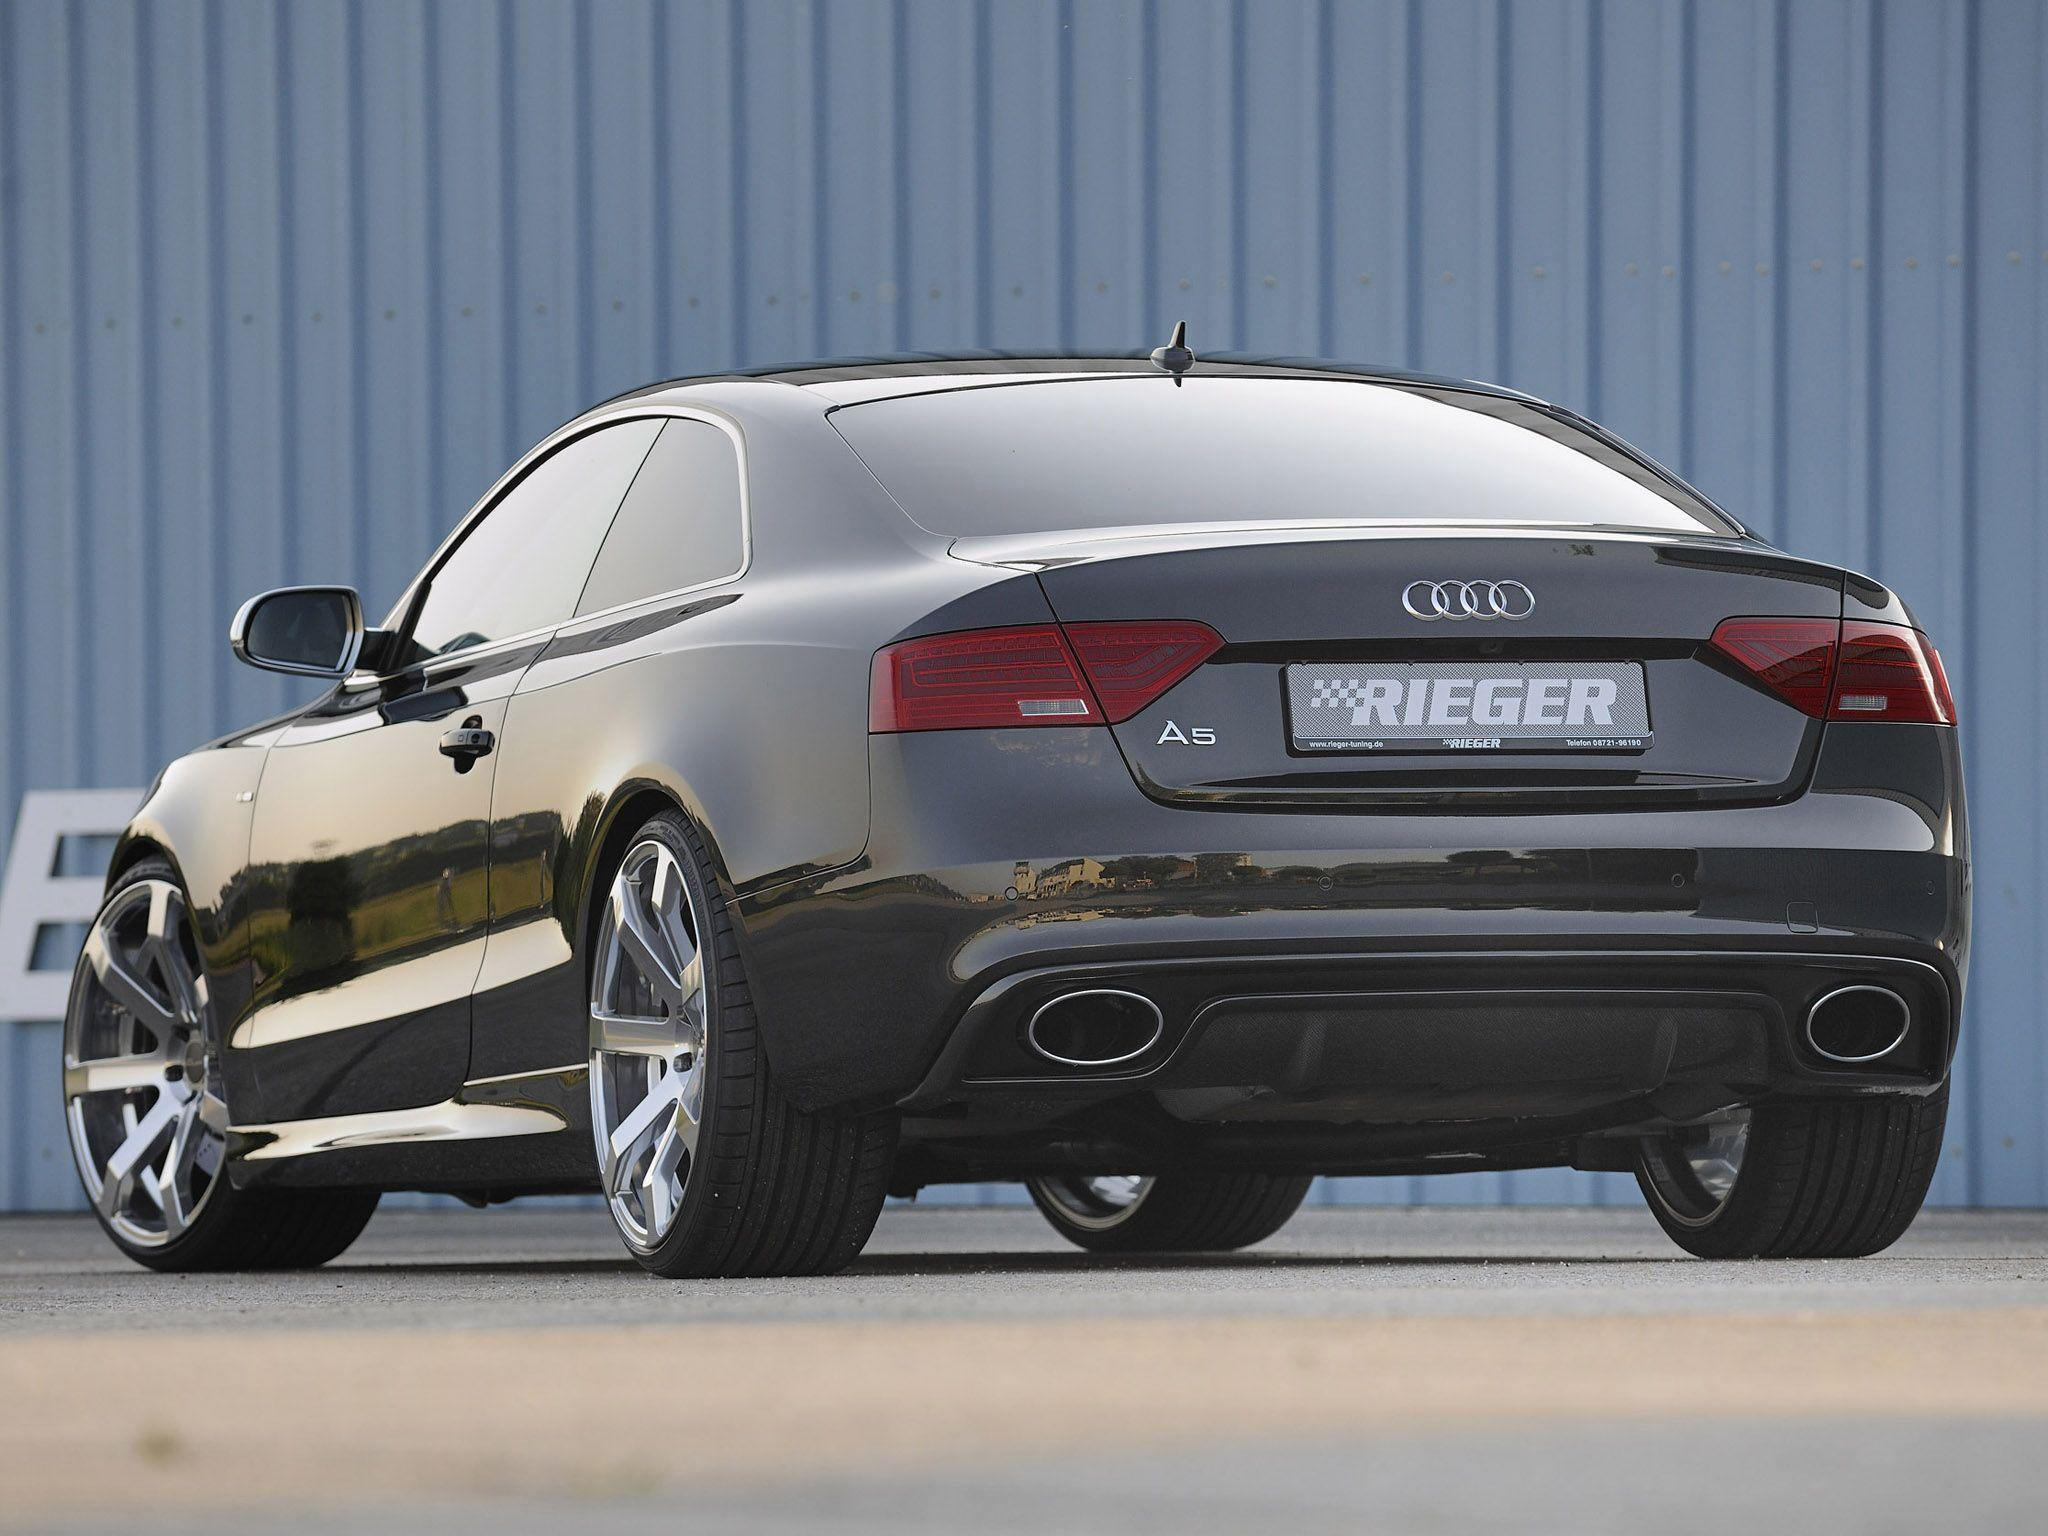 AUDI A5 BY RIEGER